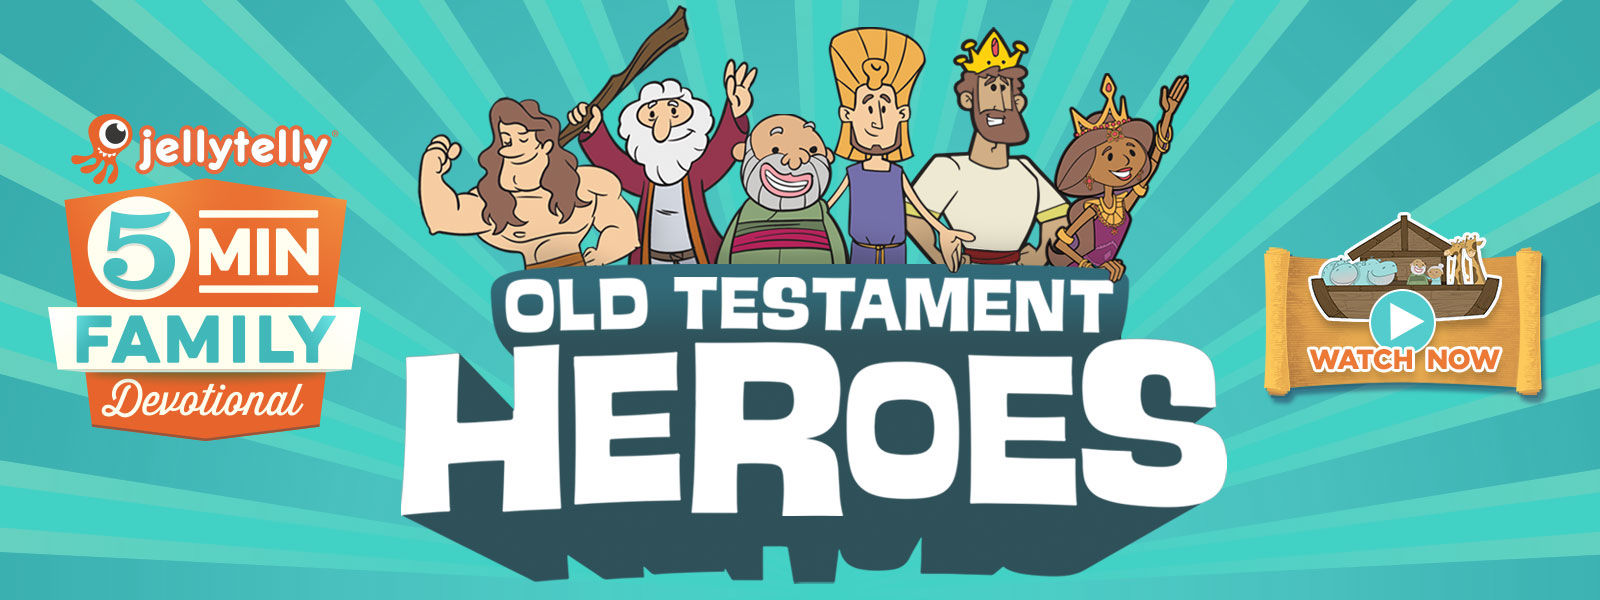 5 Minute Family Devotional - Old Testament Heroes